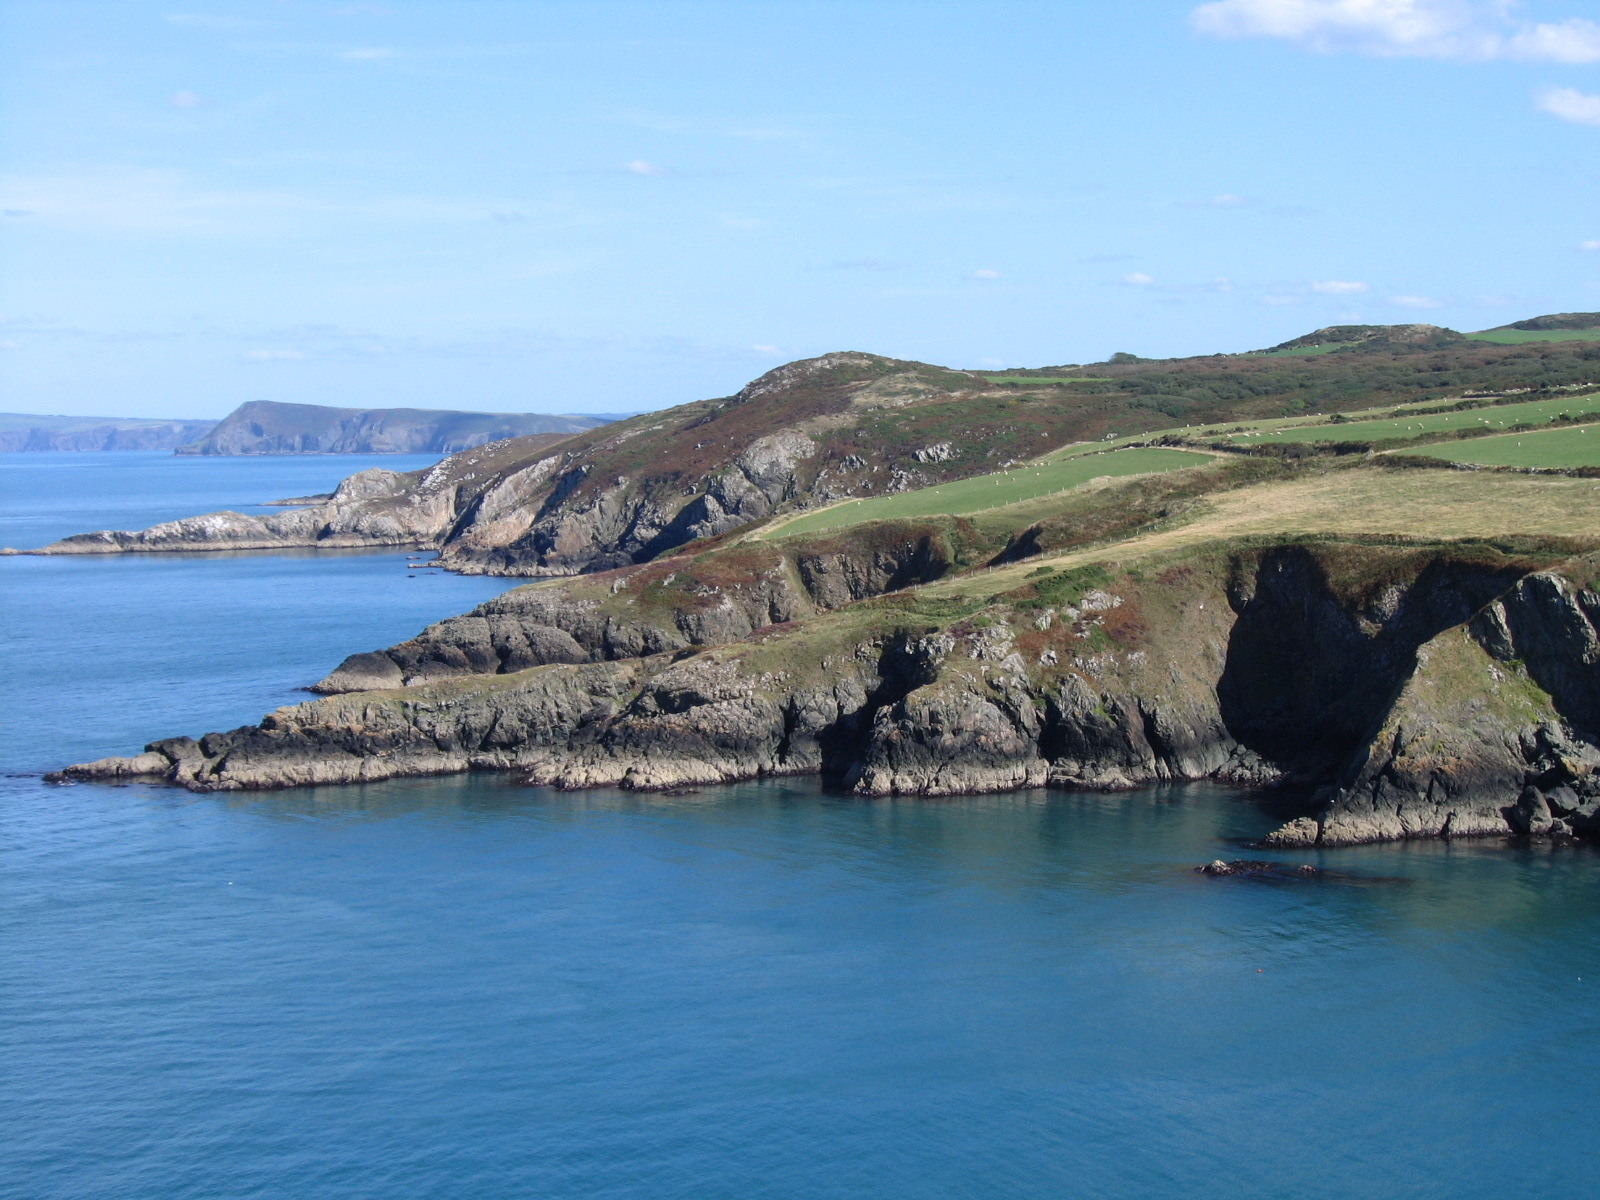 Pembrokeshire Beach Holidays: Things To Do